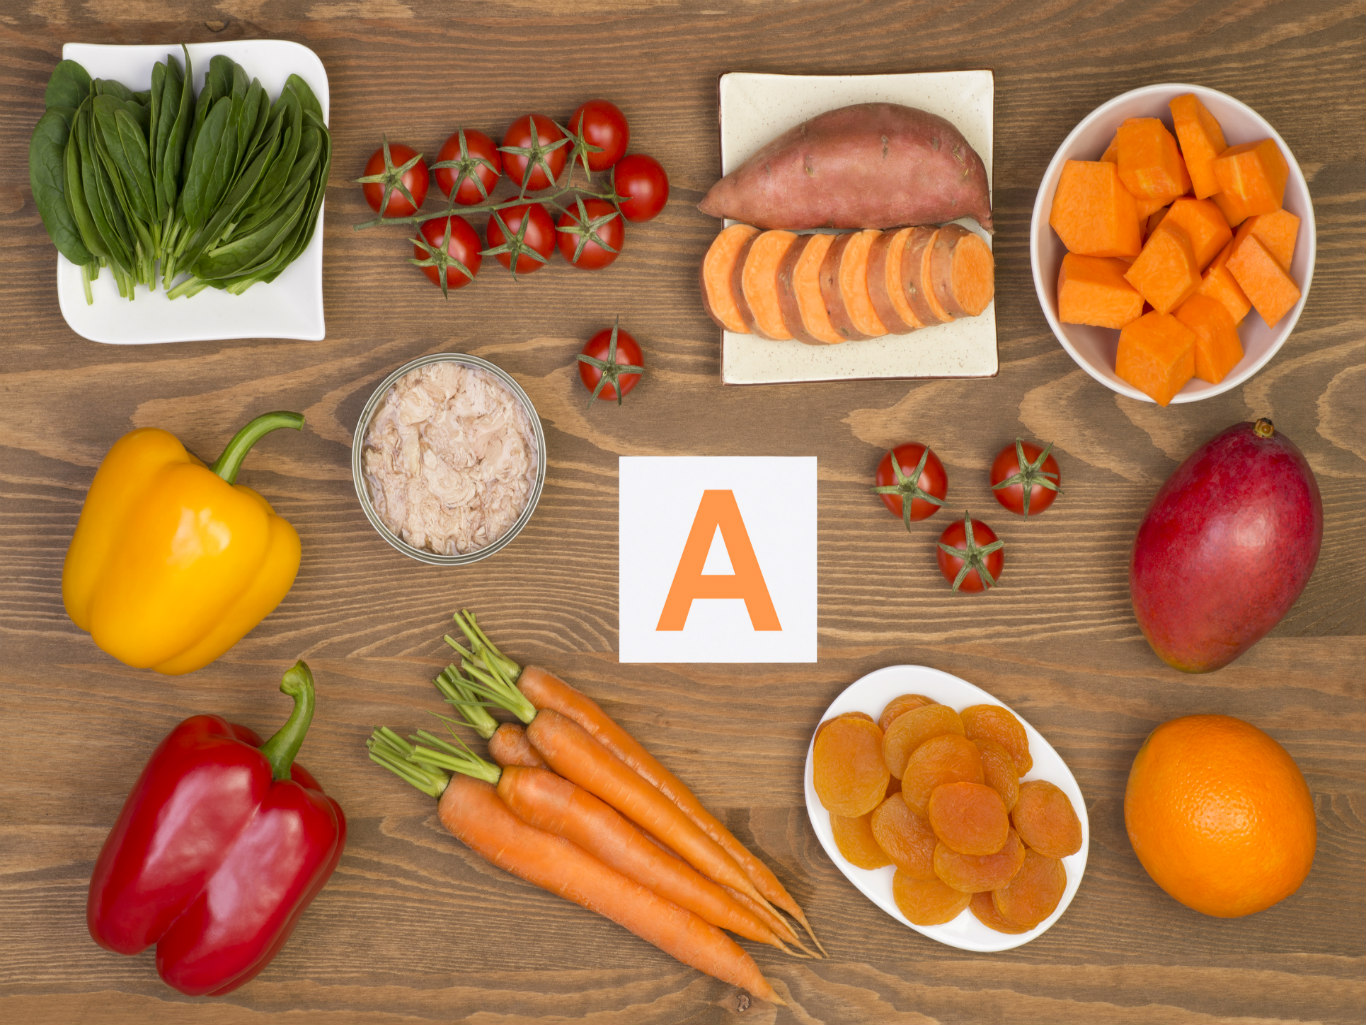 What foods contain vitamin A